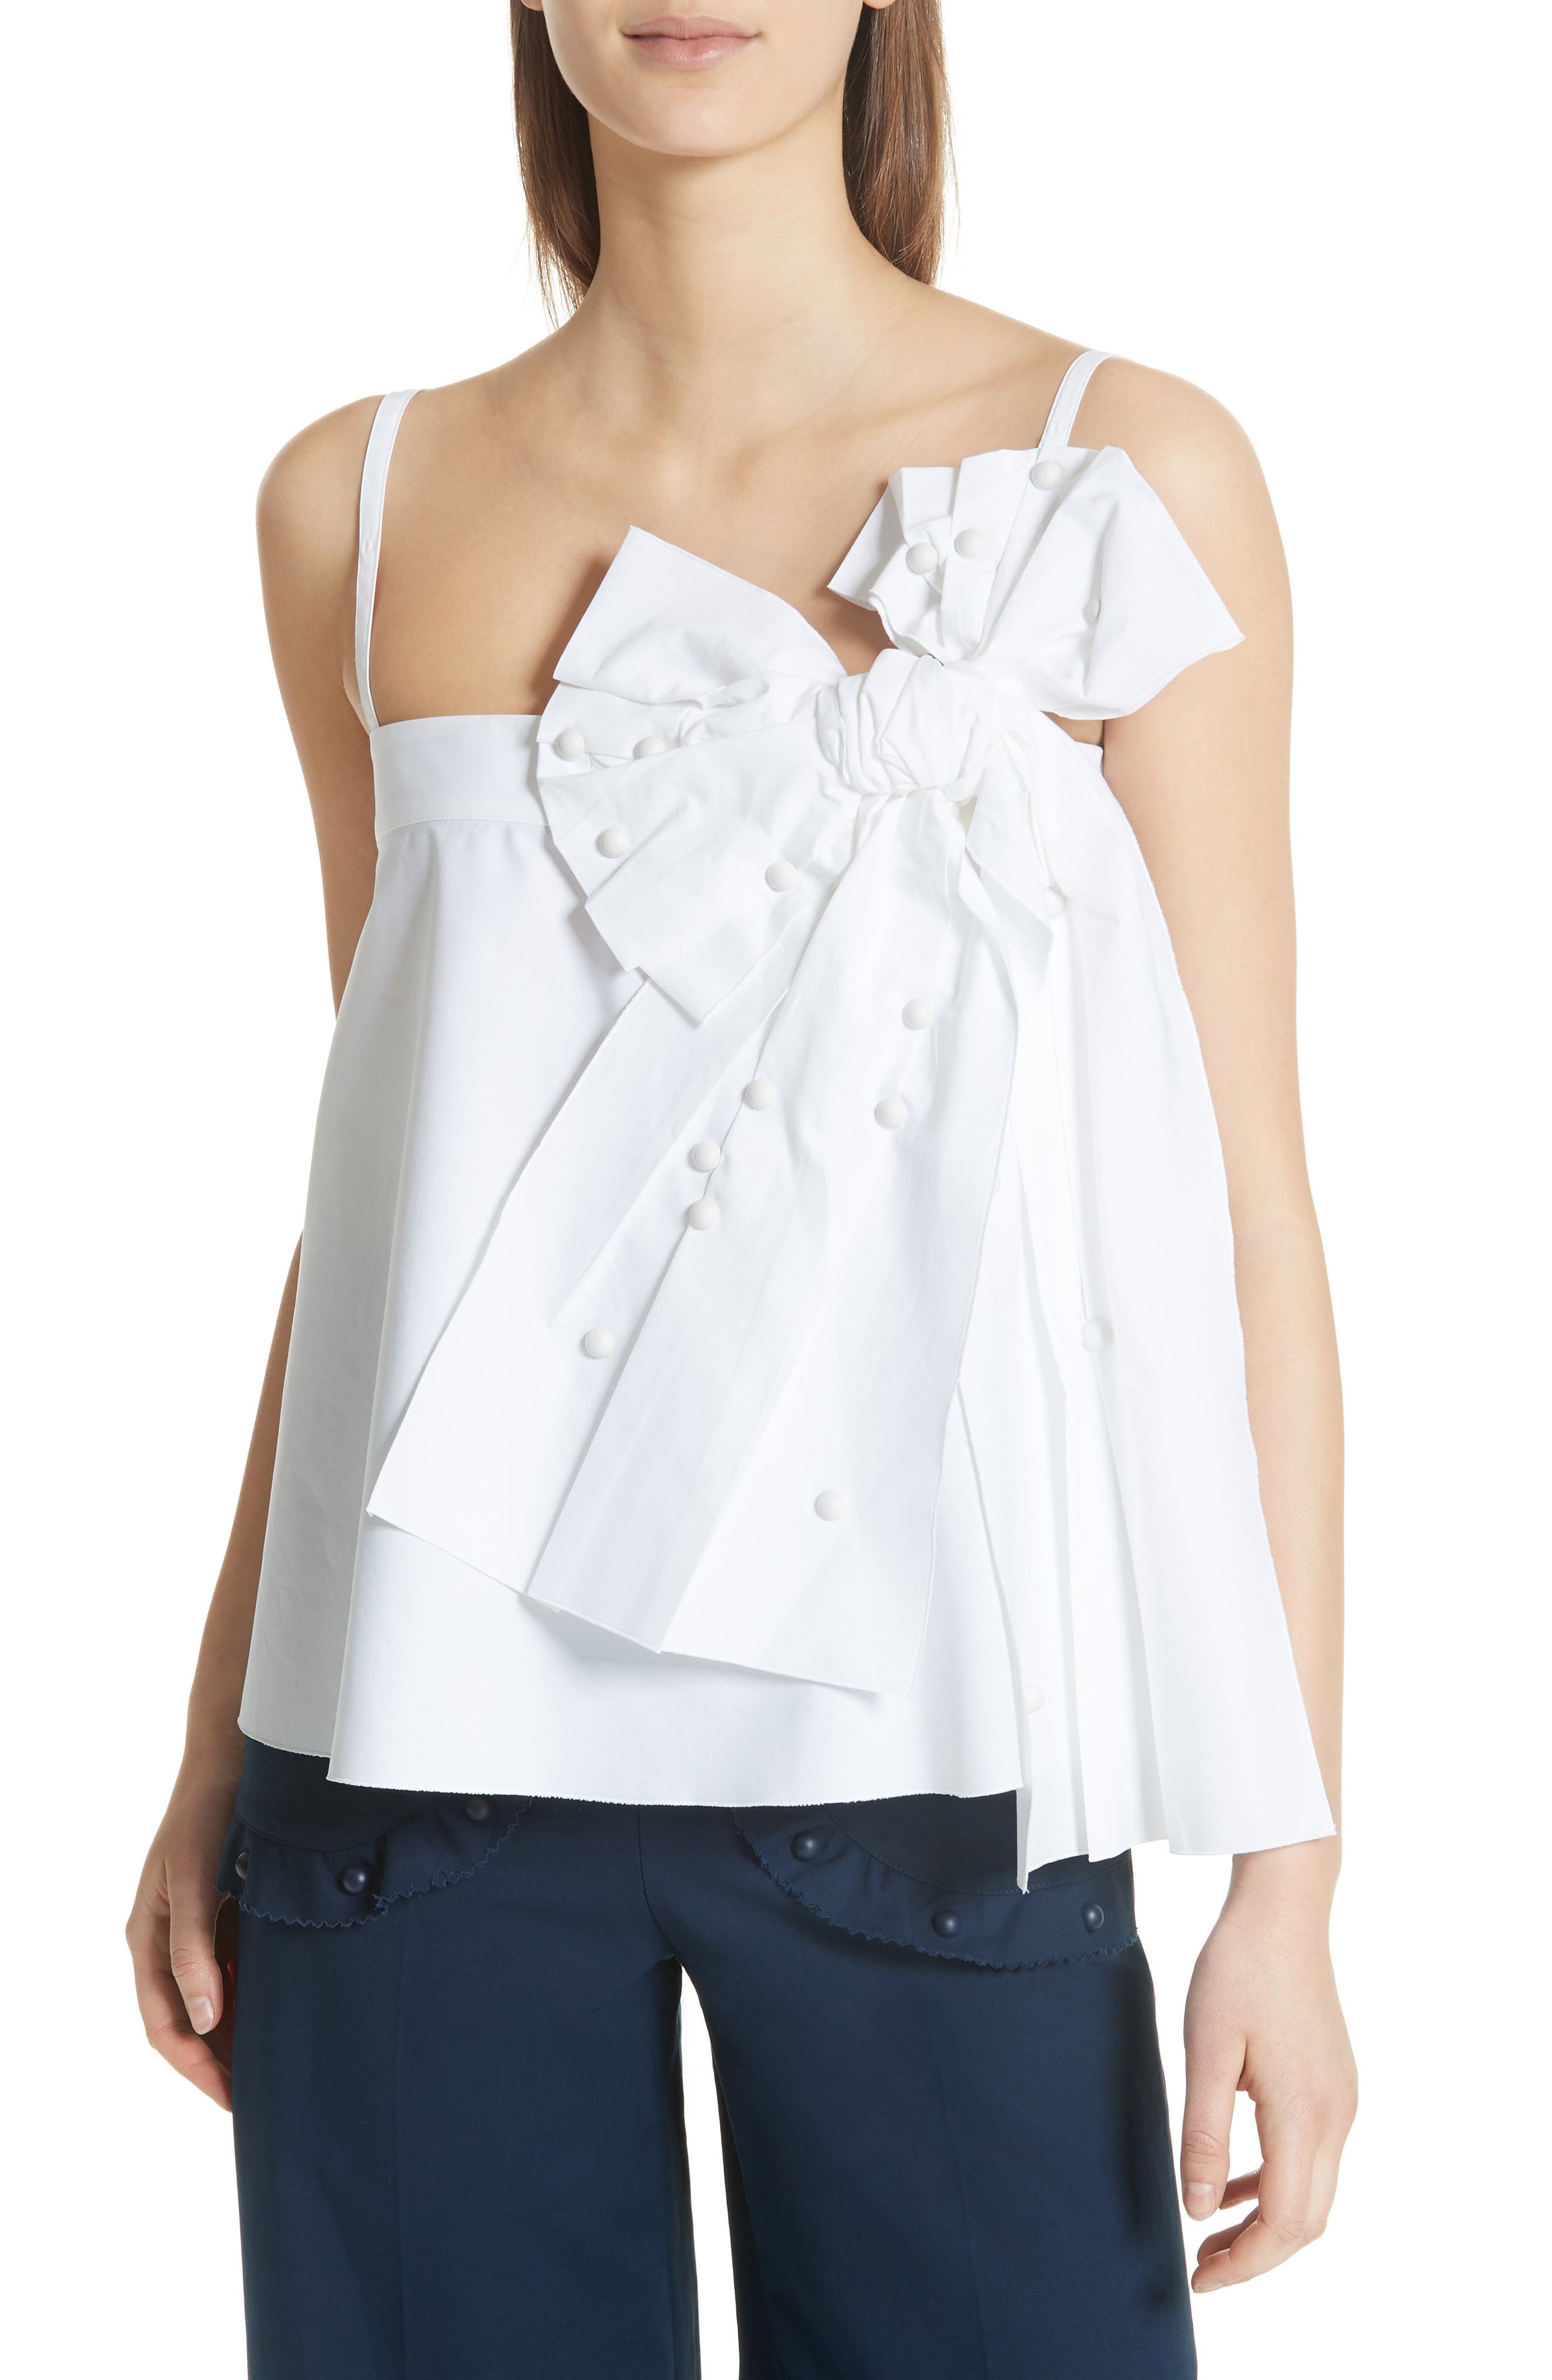 RED Valentino Bow Detail Top